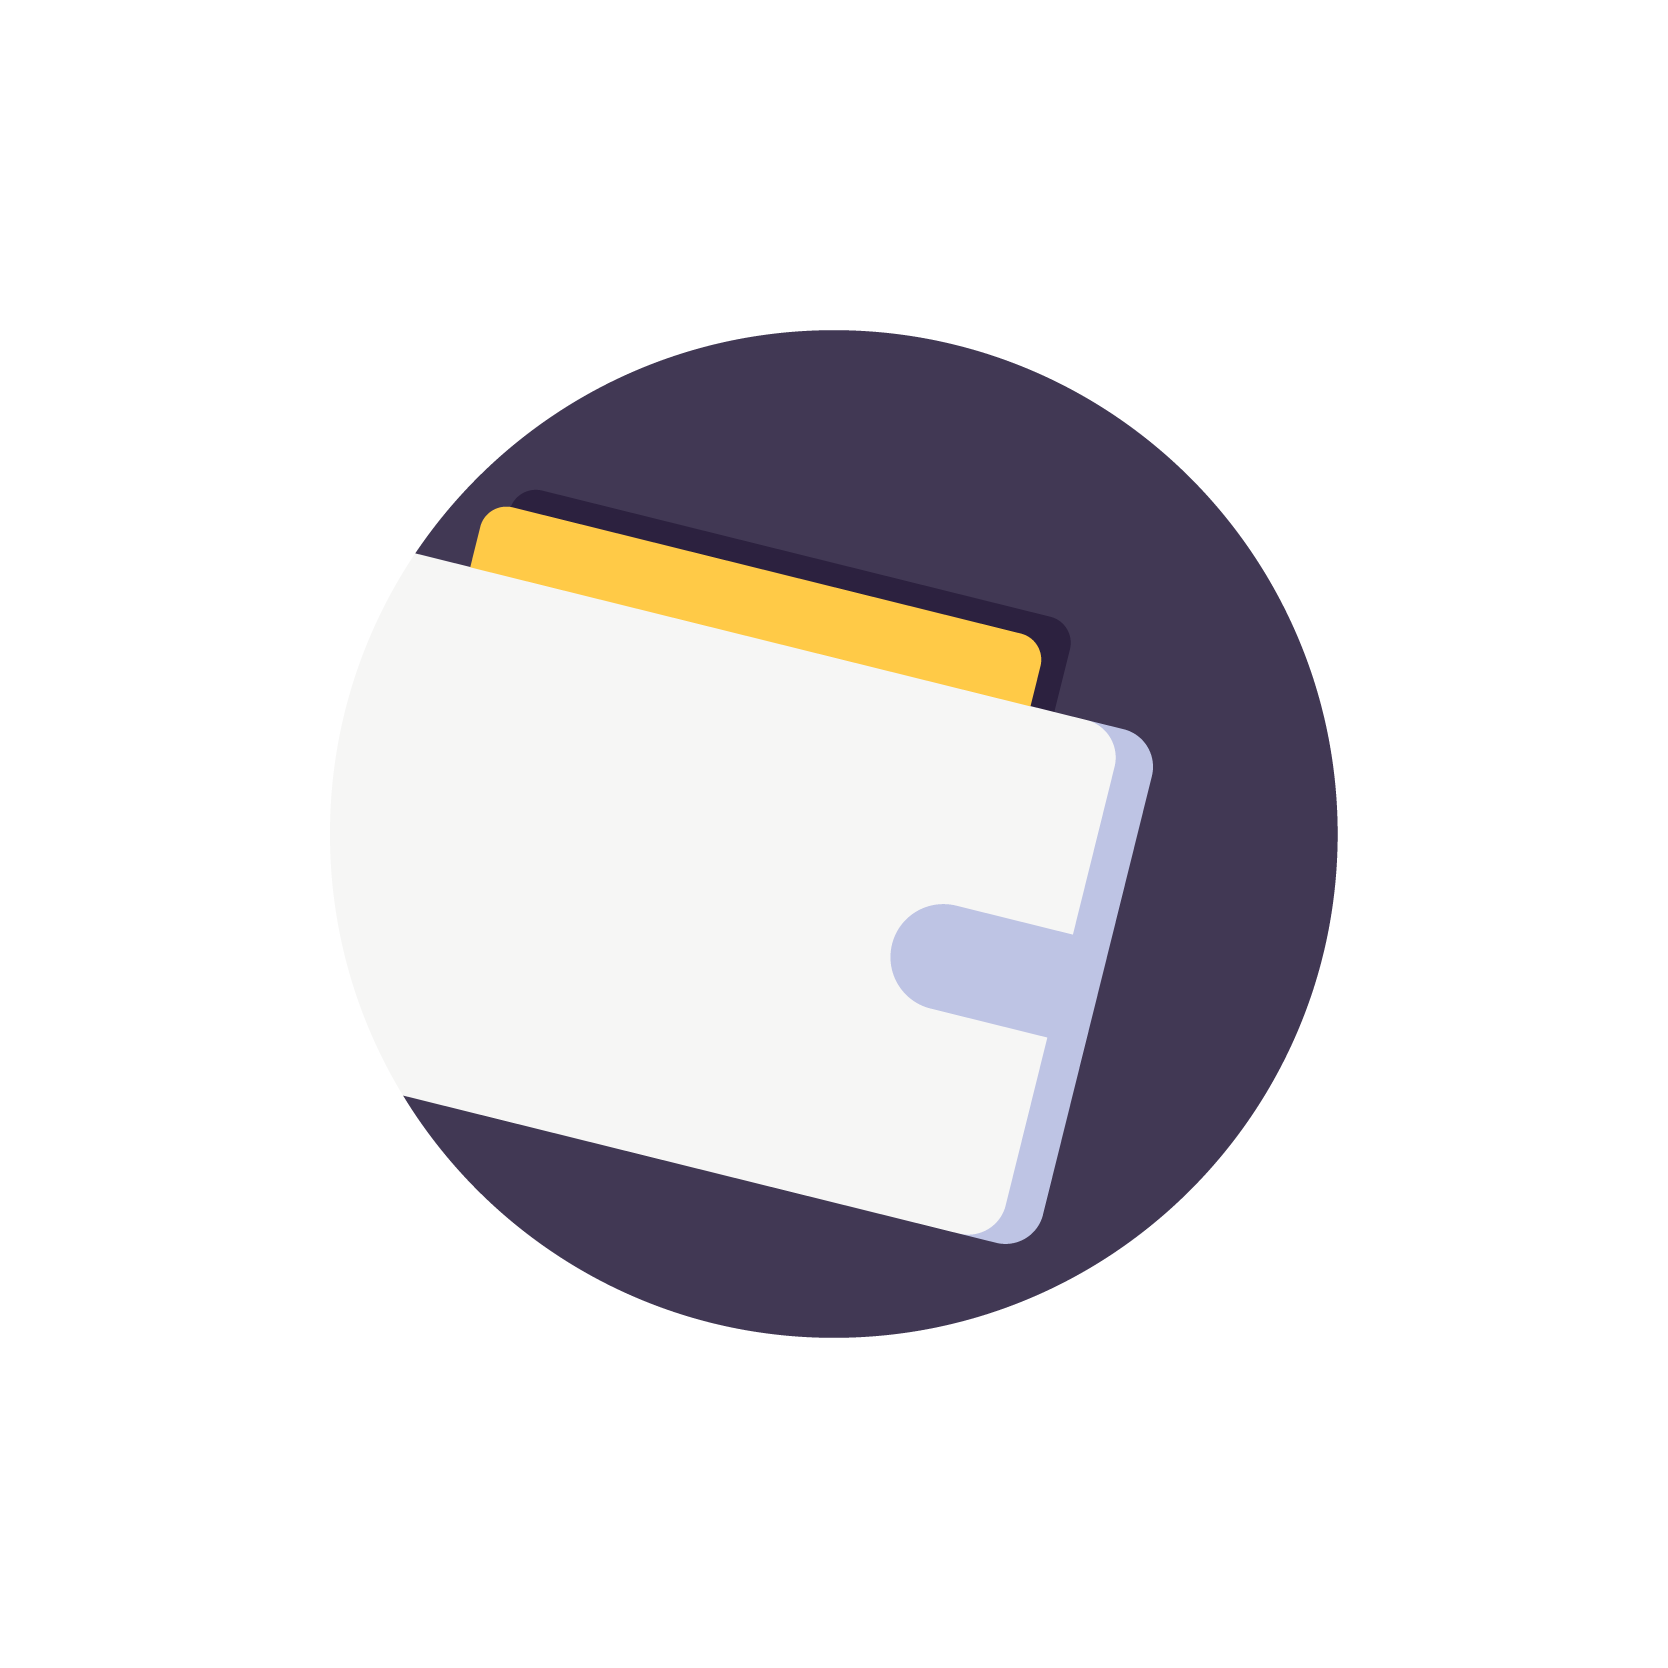 01_SB_Packaging_Icons_R1_Wallet